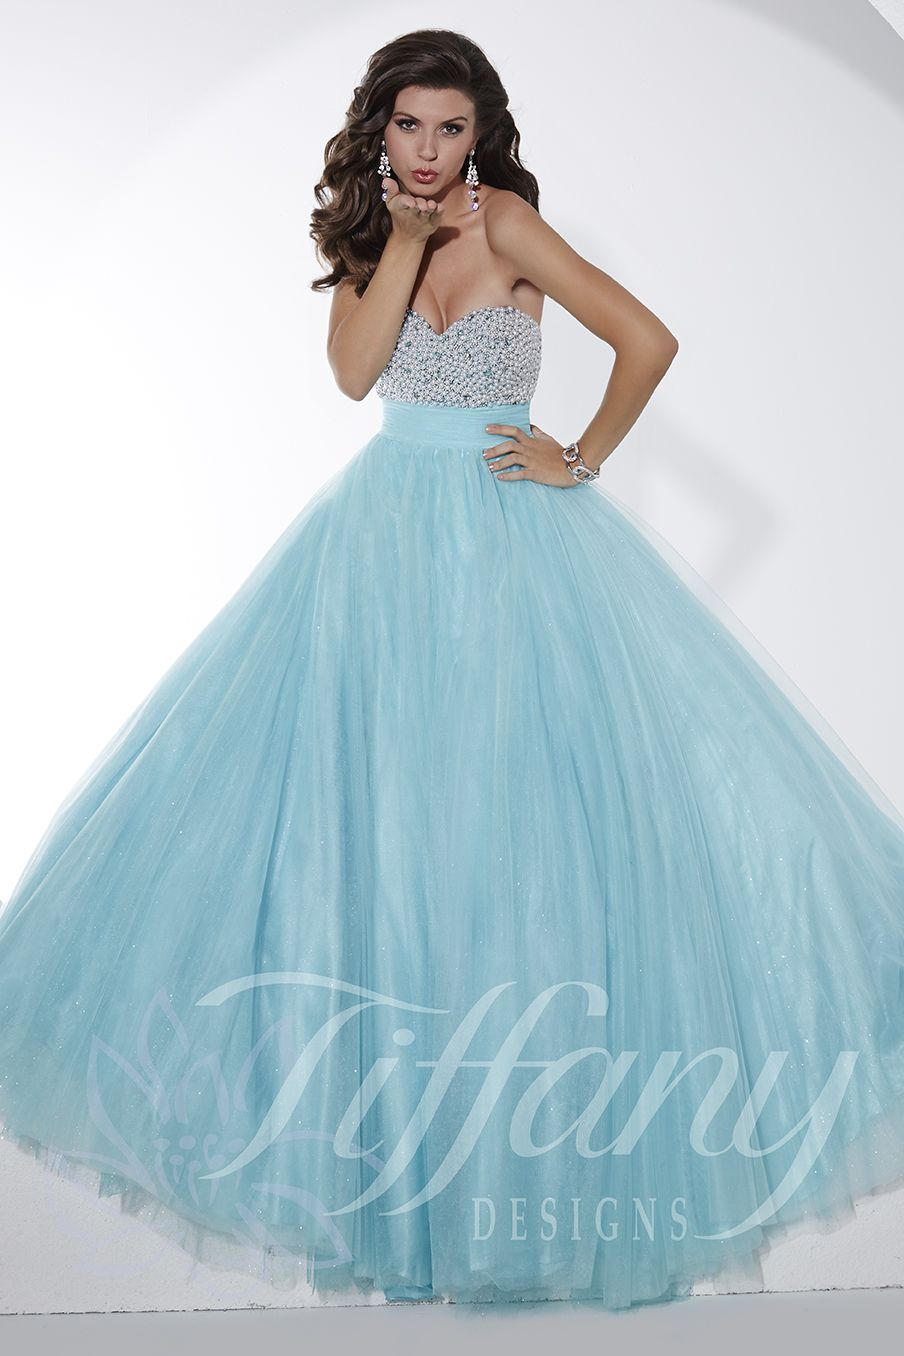 Tiffany Designs Style 61139: The strapless sweetheart bodice of this ...